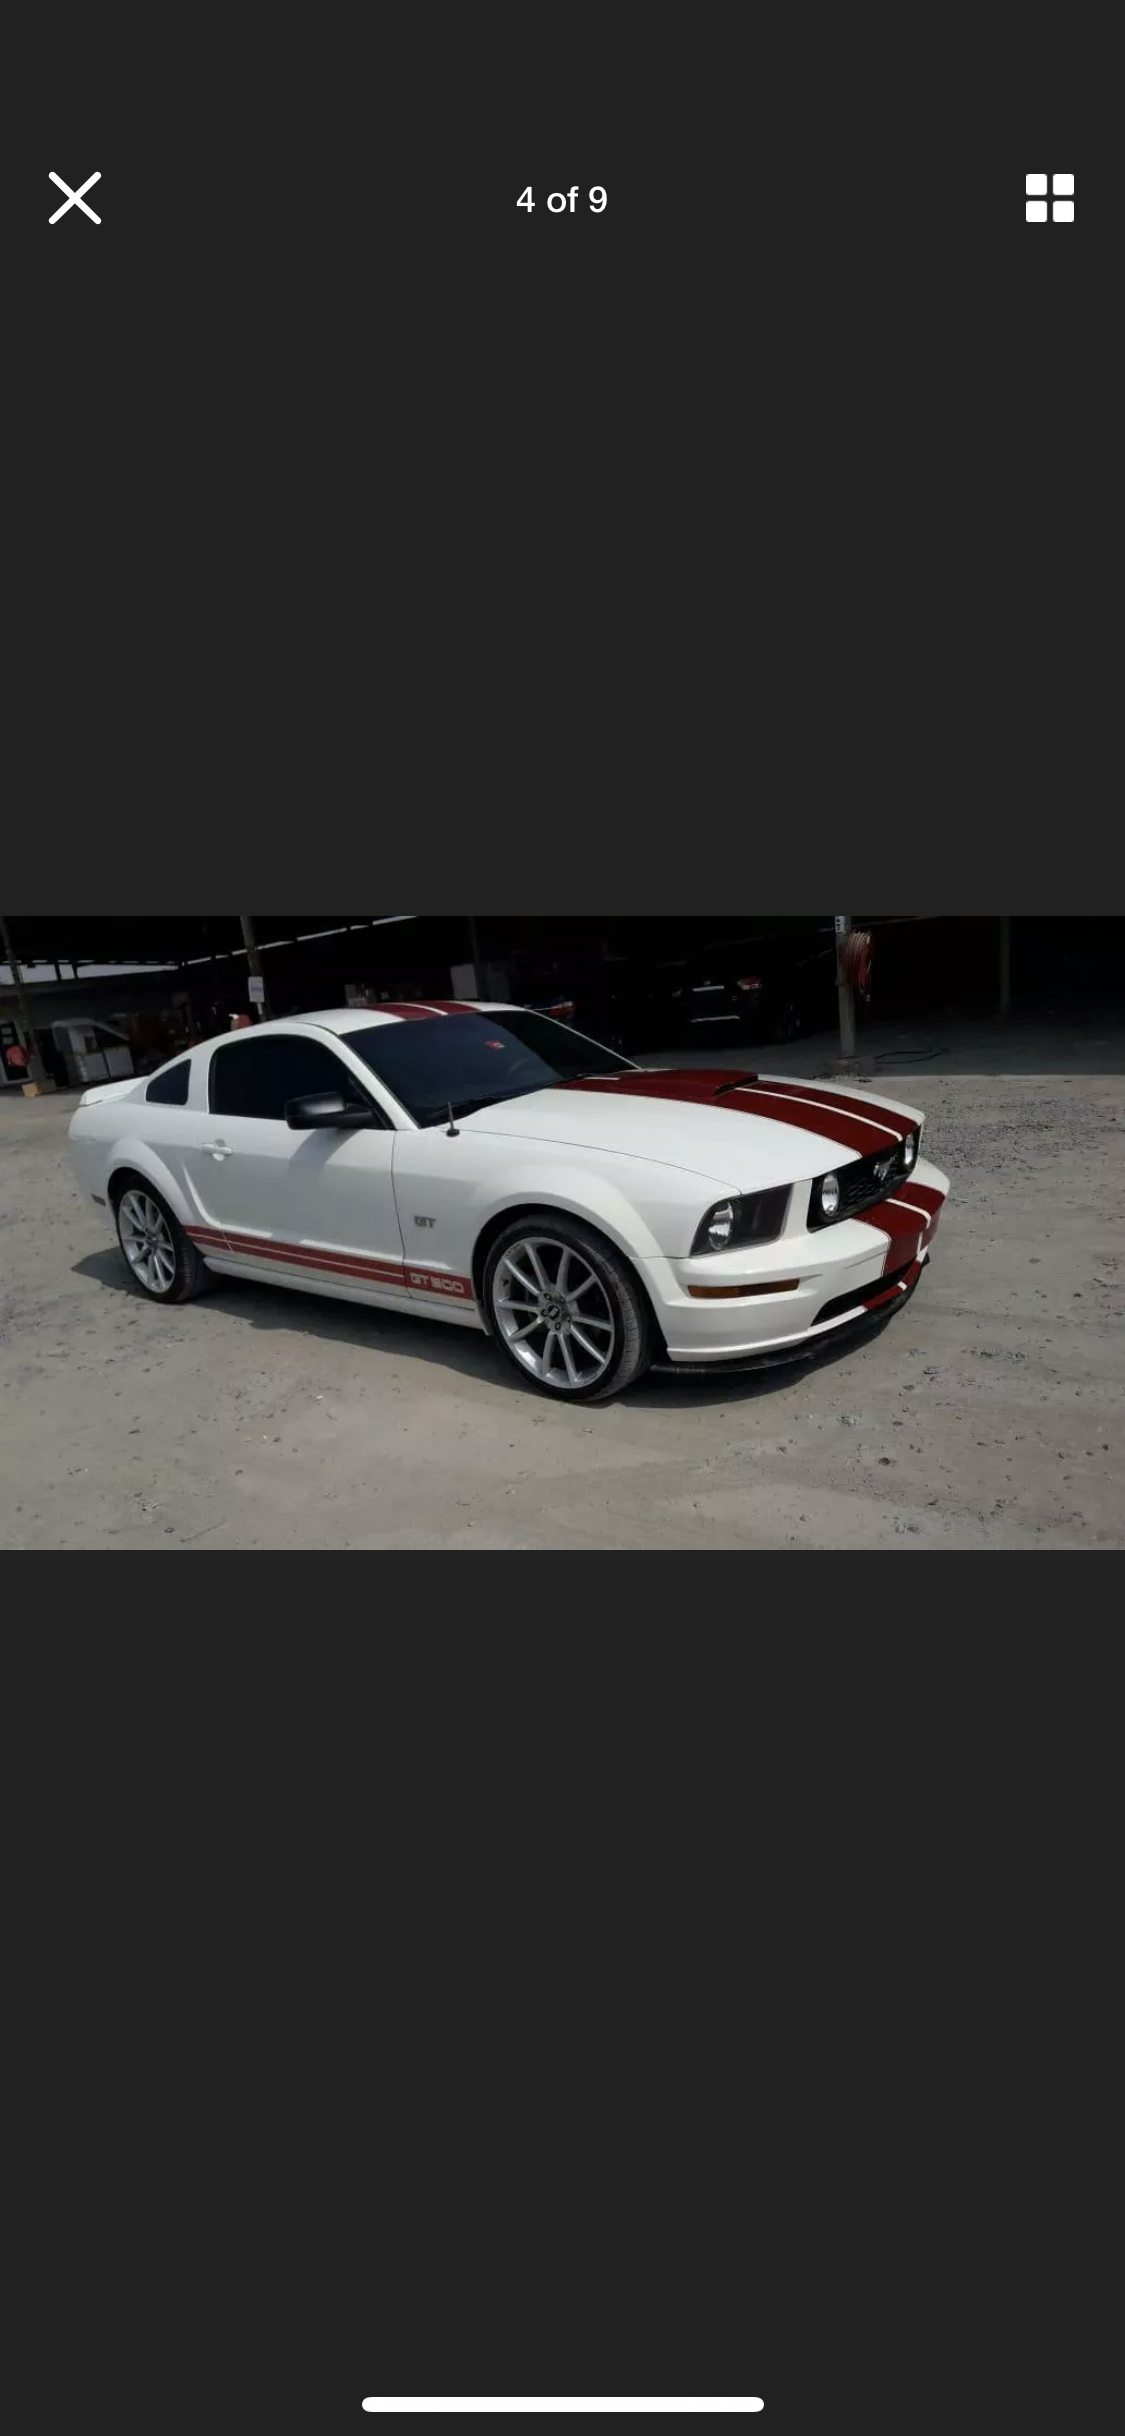 2008 FORD MUSTANG 4.6 V8 GT RARE MANUAL  LHD FRESH IMPORT For Sale (picture 4 of 6)